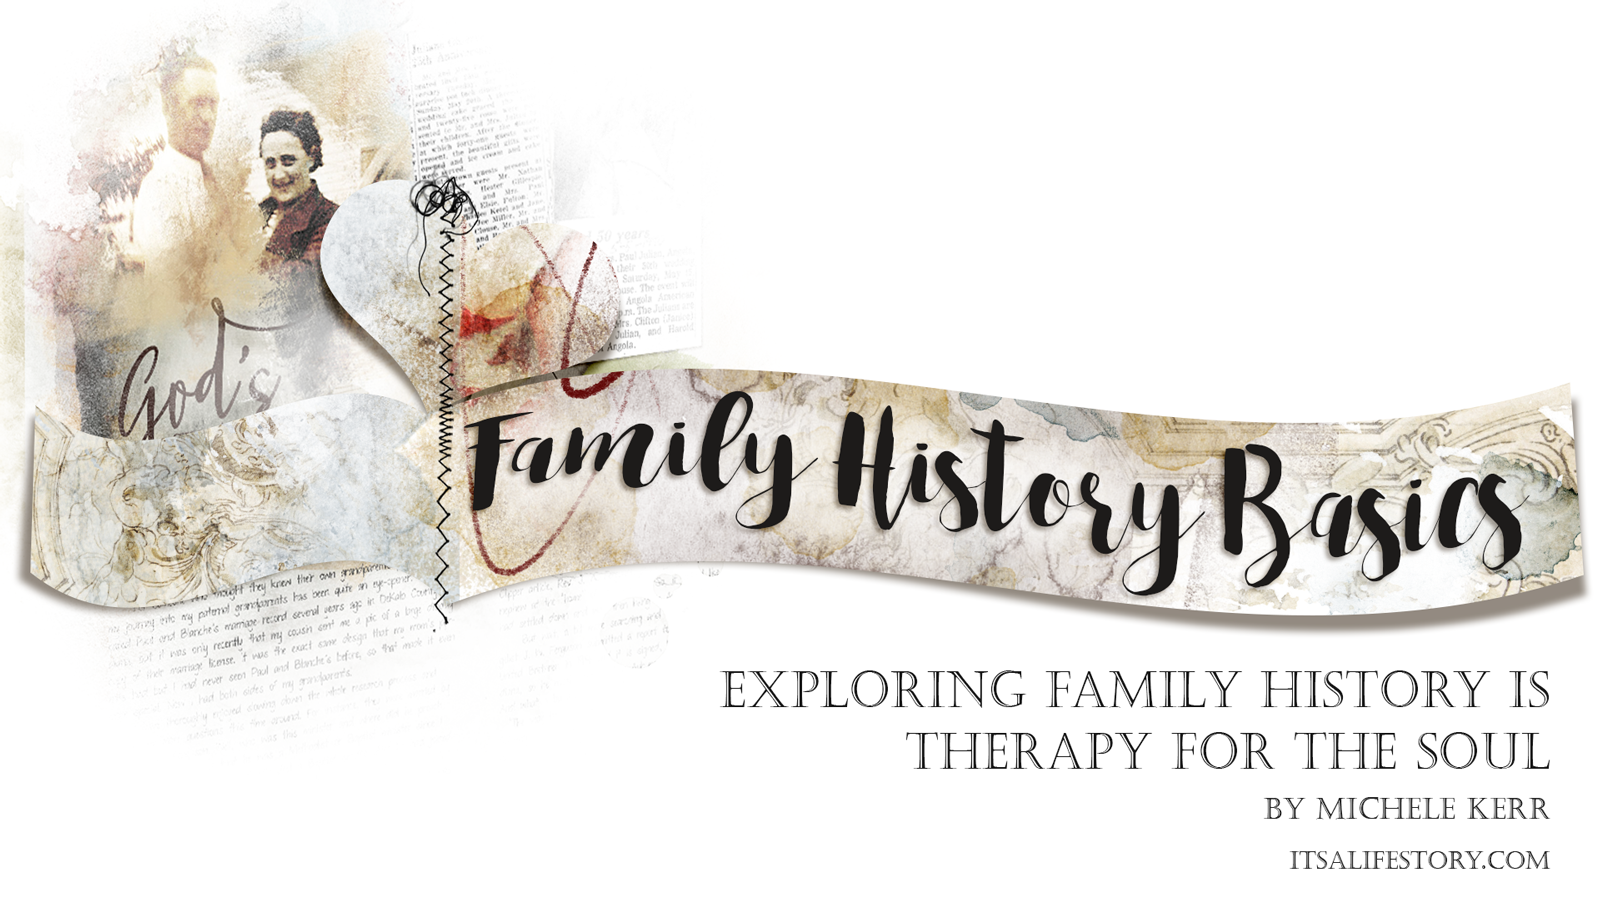 ItsALifeStory.com _ FAMILY HISTORY BASICS - Exploring Family History is Therapy for the Soul